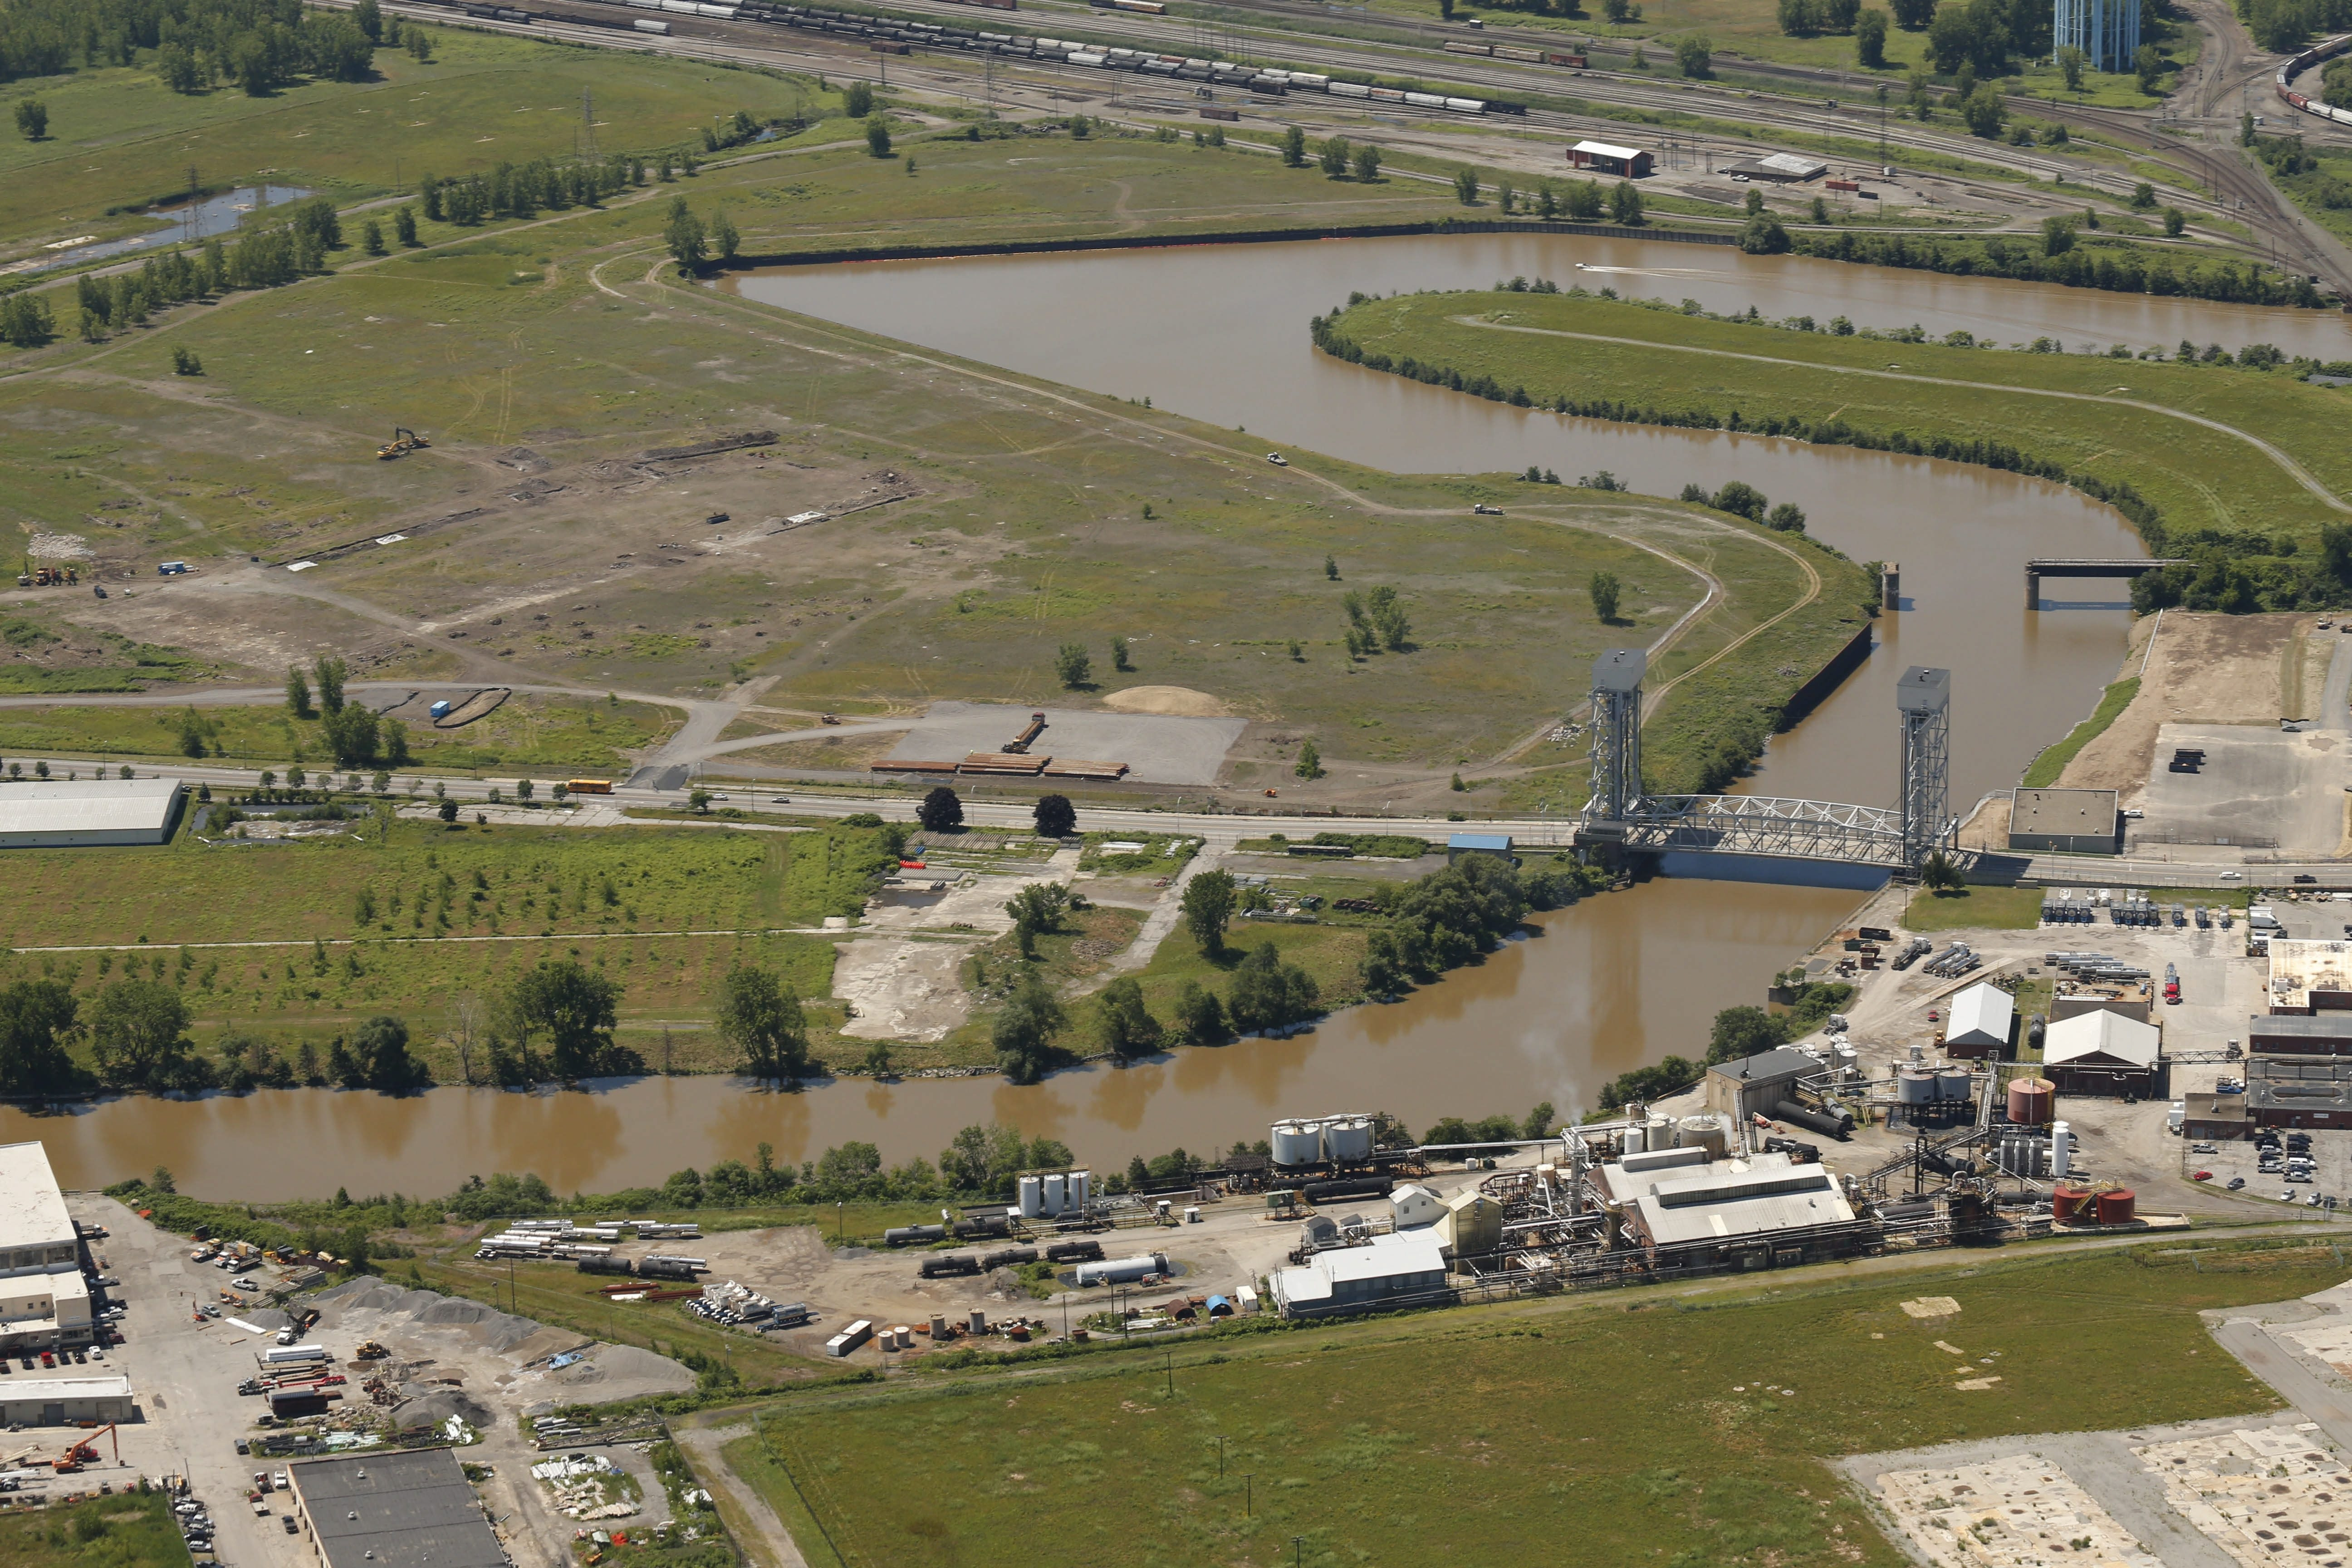 The RiverBend site on the Buffalo River, where excavation work is beginning on a new clean energy hub in South Buffalo.